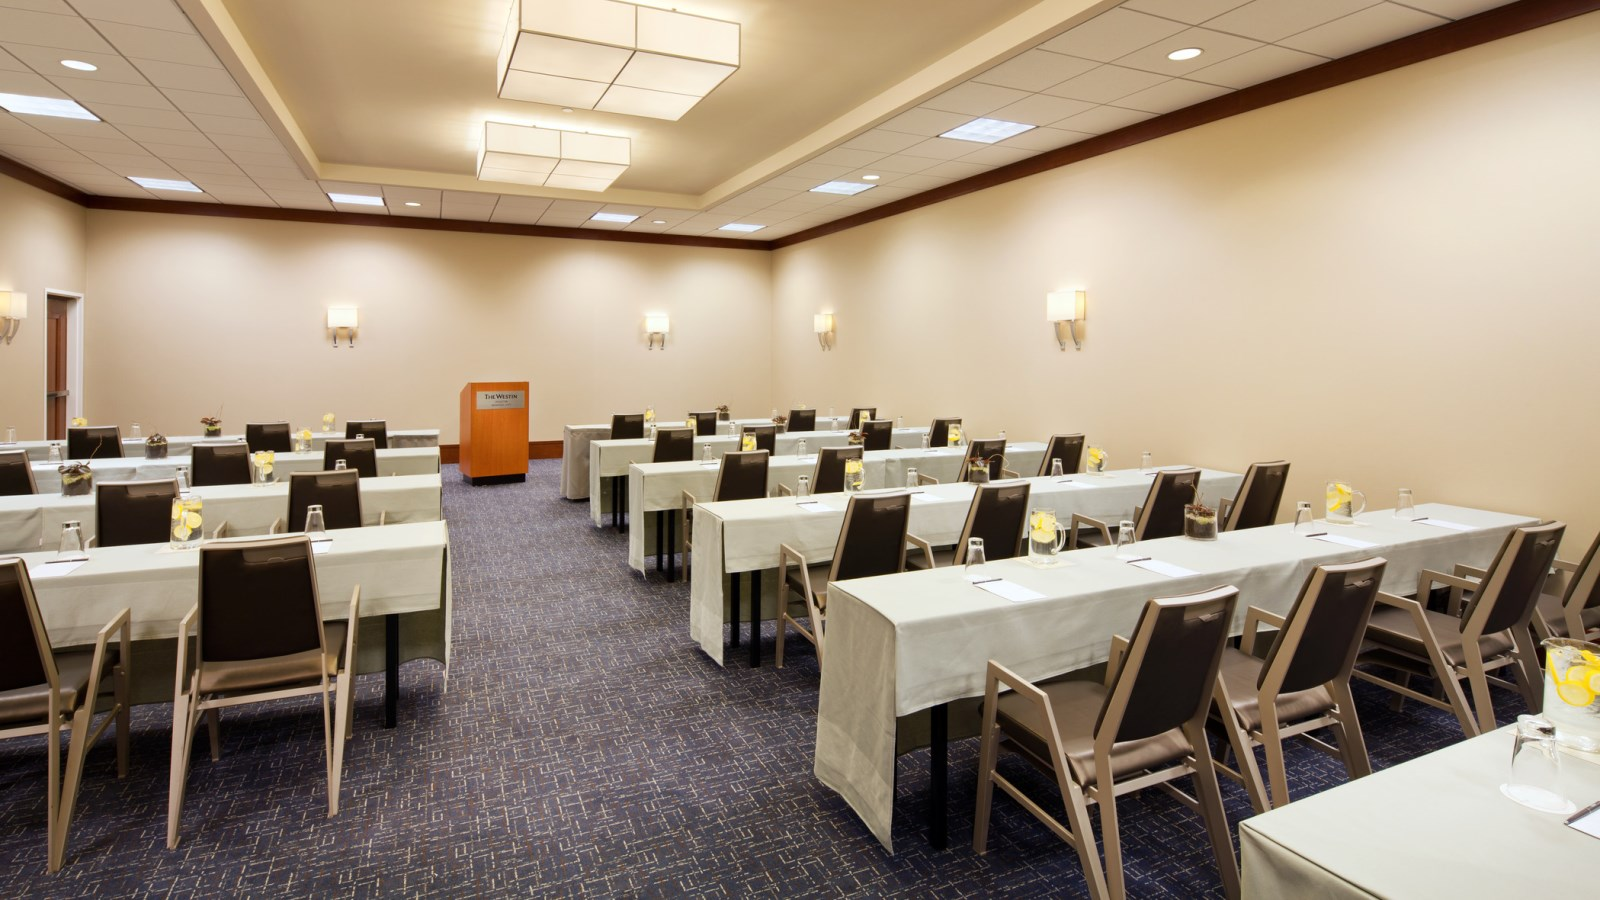 The Willow Room - a great venue for seminars and corporate training.